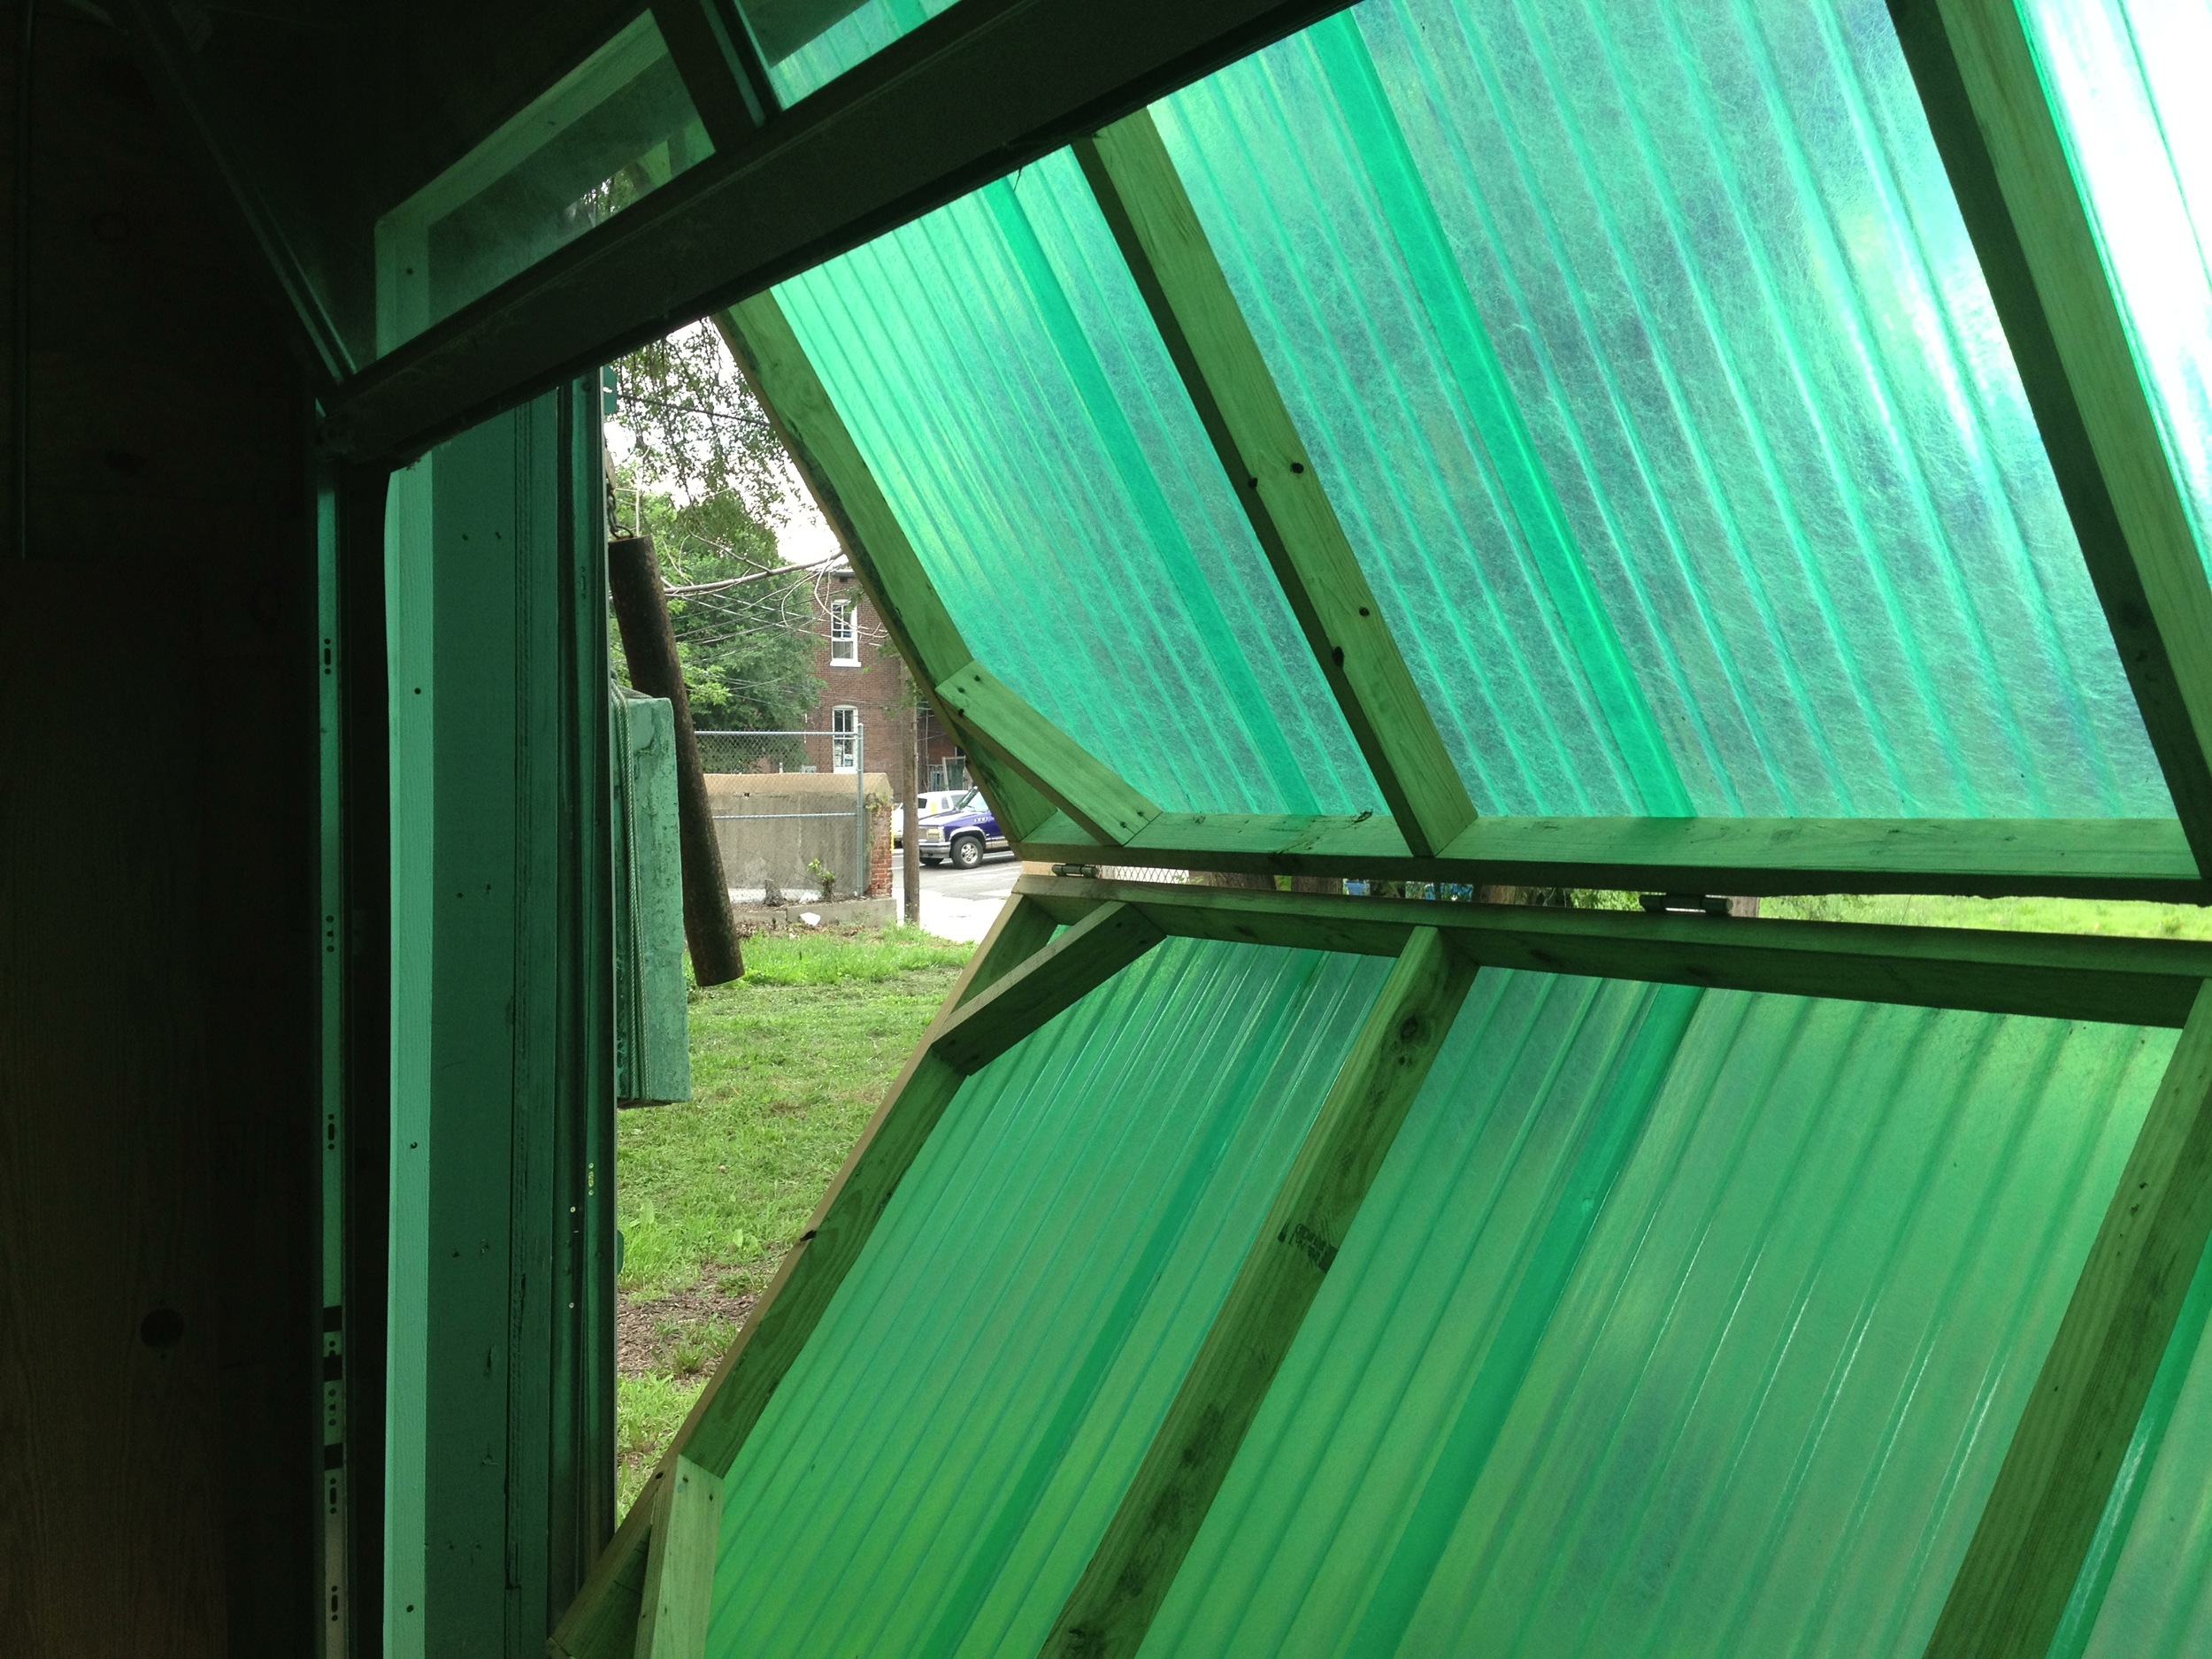 The back opening has two layers: a glazed commercial-grade garage door, and a clever outer door made of corrugated greenhouse fiberglass. It operates with homemade concrete counterweights.